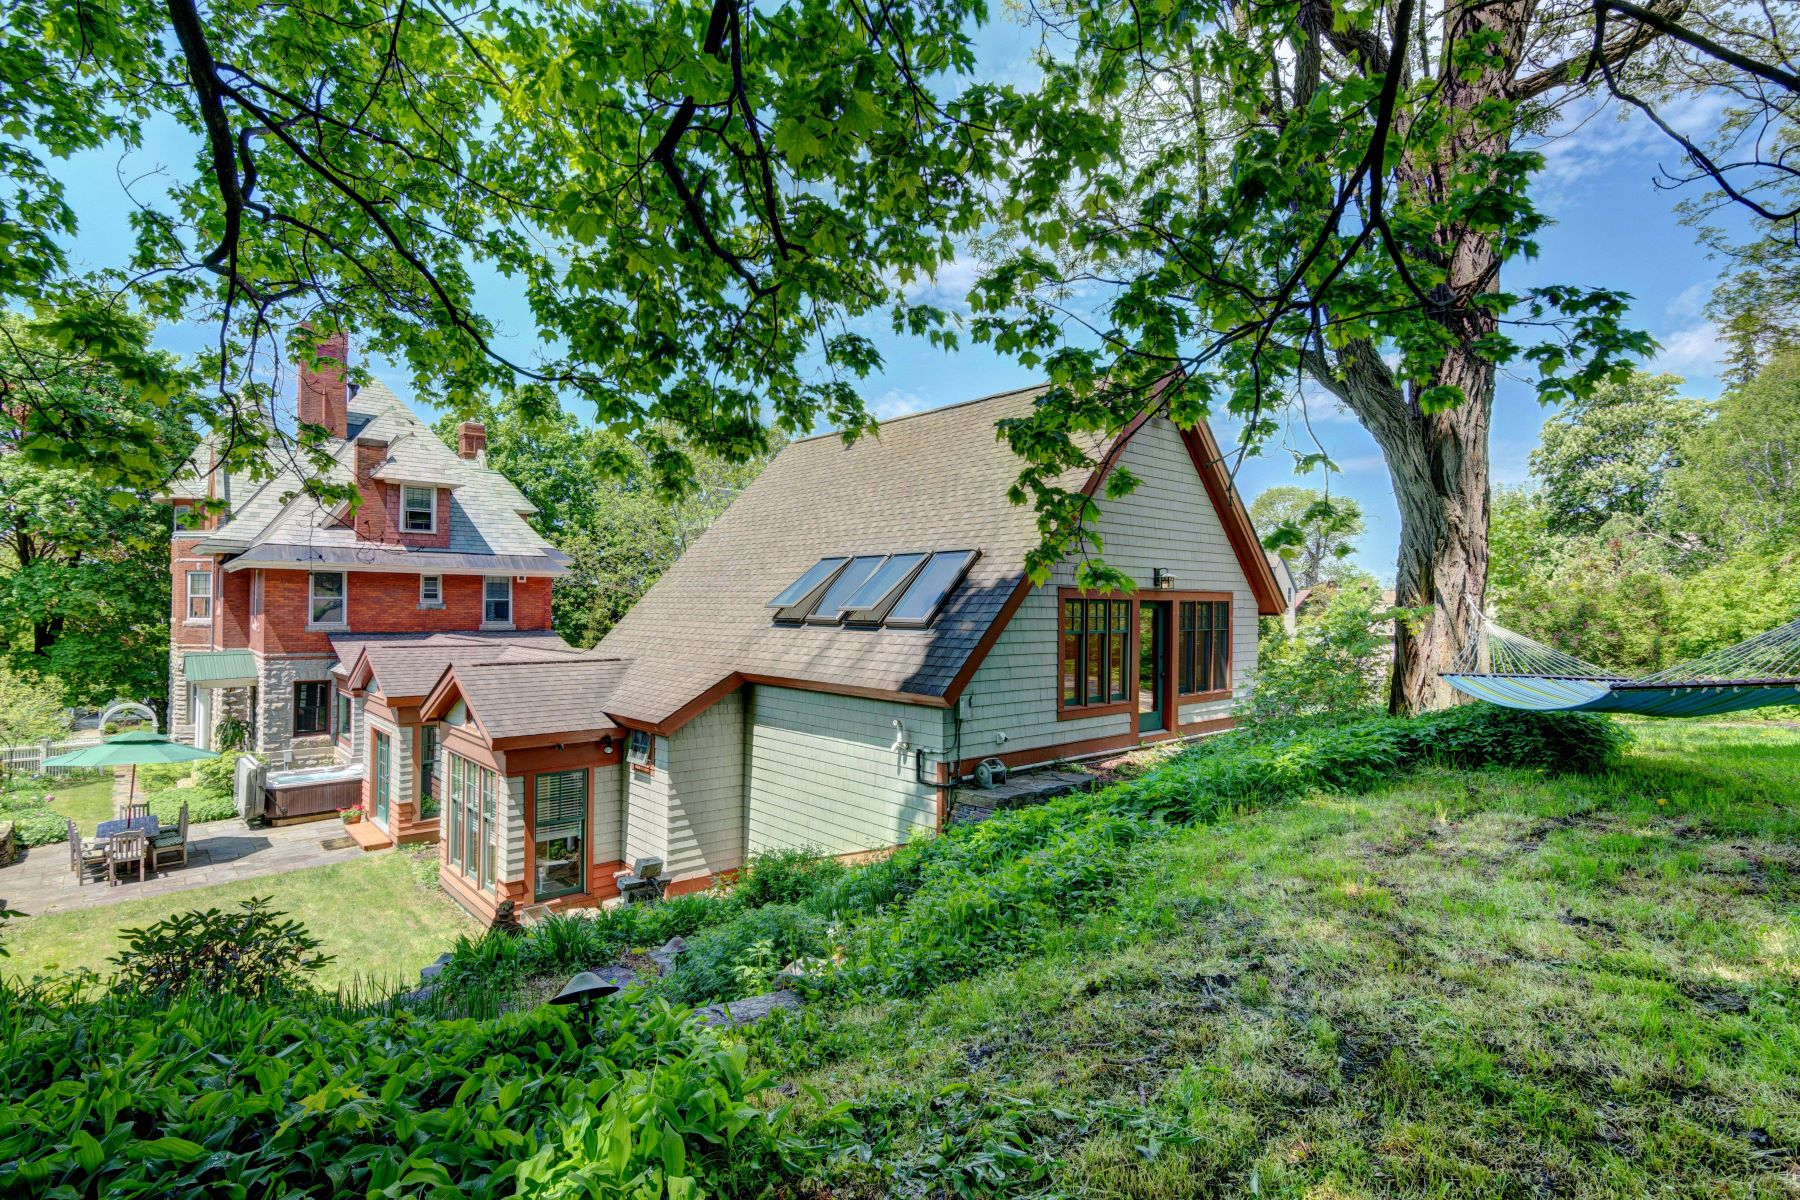 Single Family Homes for Sale at 266 South Union Street, Burlington 266 South Union St Burlington, Vermont 05401 United States